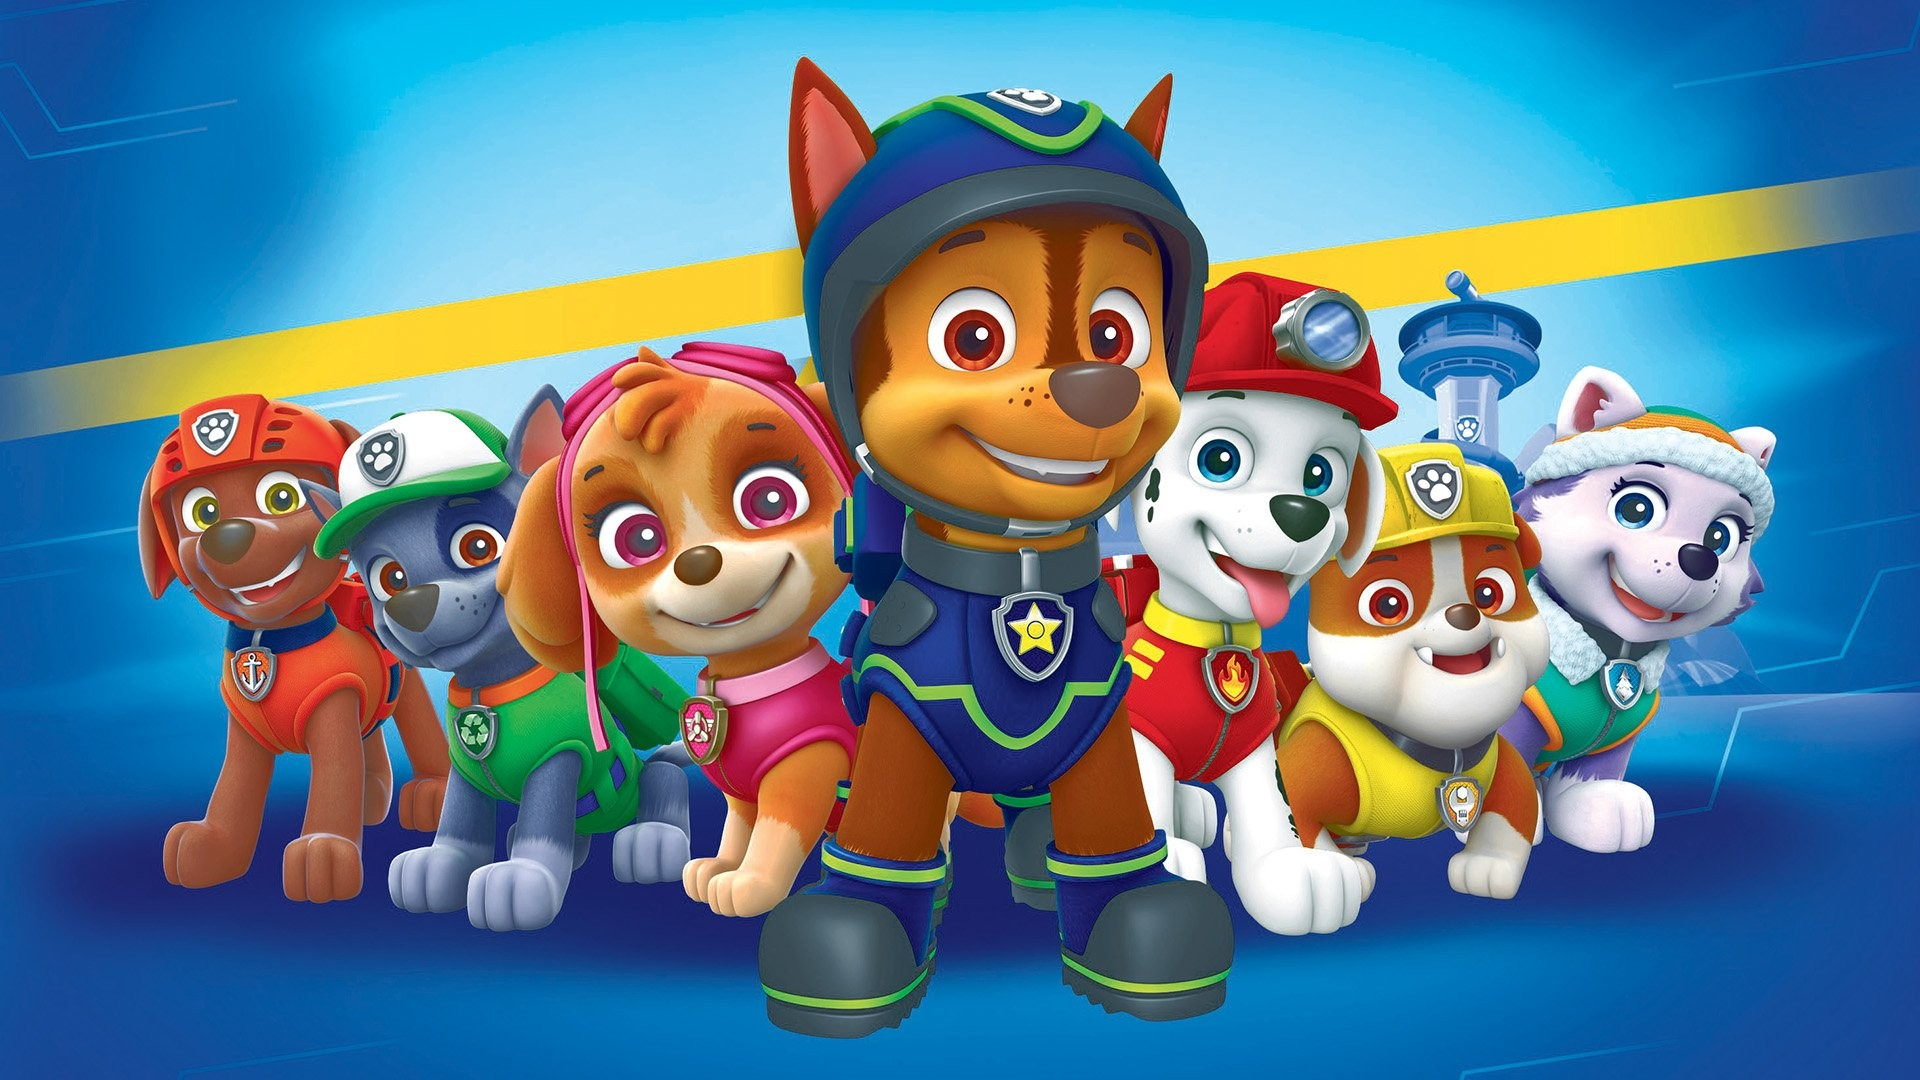 Paw Patrol Background ① Download Free Wallpapers For Desktop